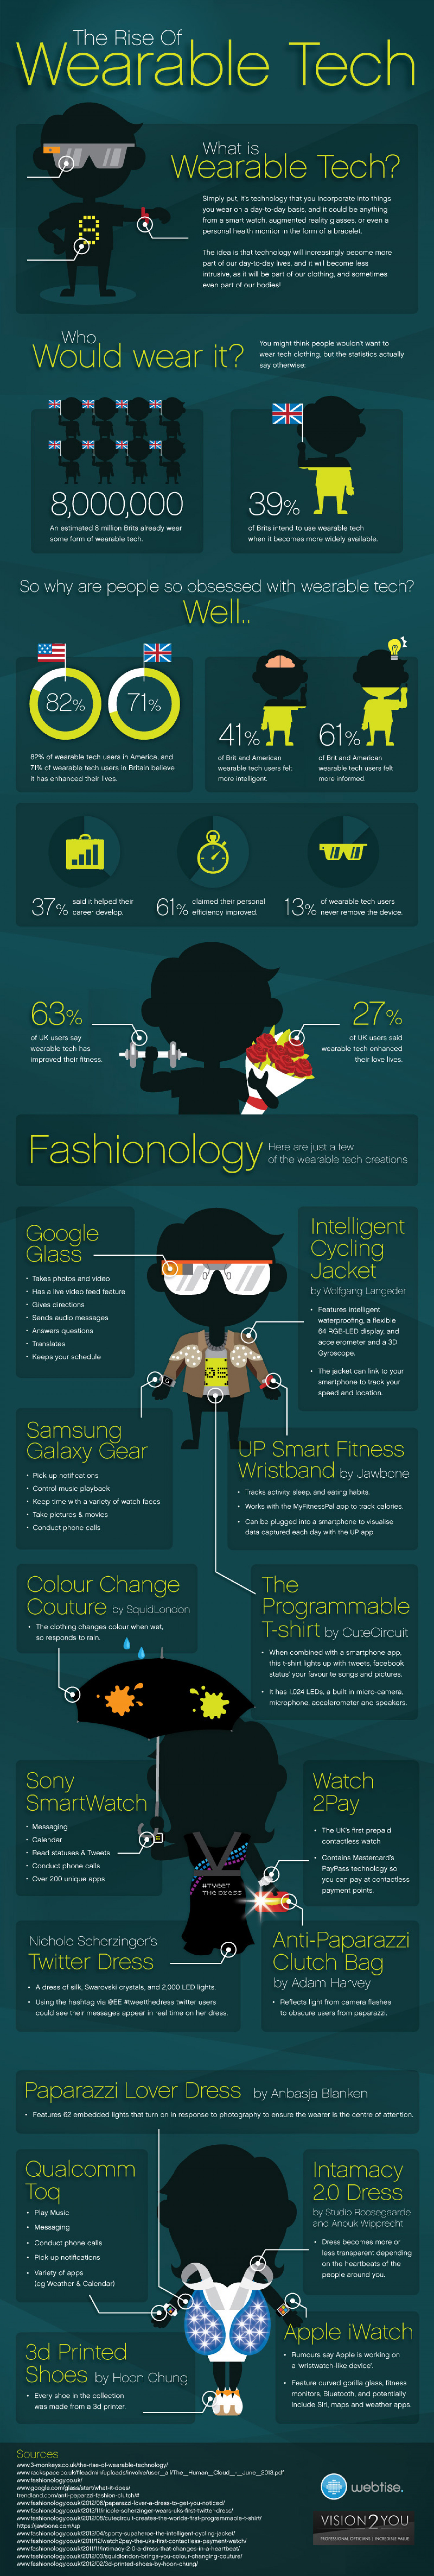 The Rise of Wearable Tech Infographic